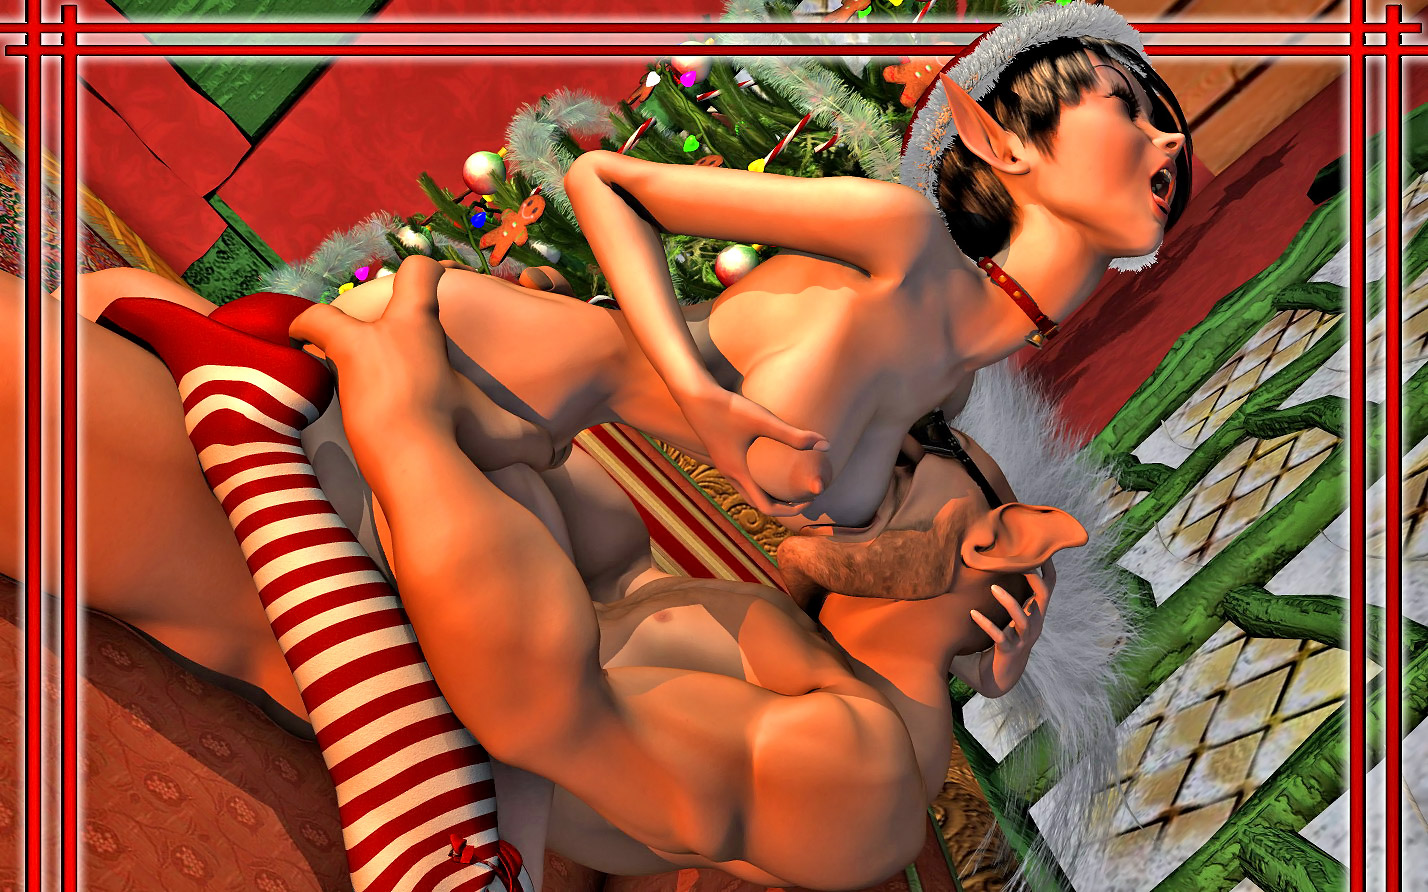 Christmas woman elf porn nudes download